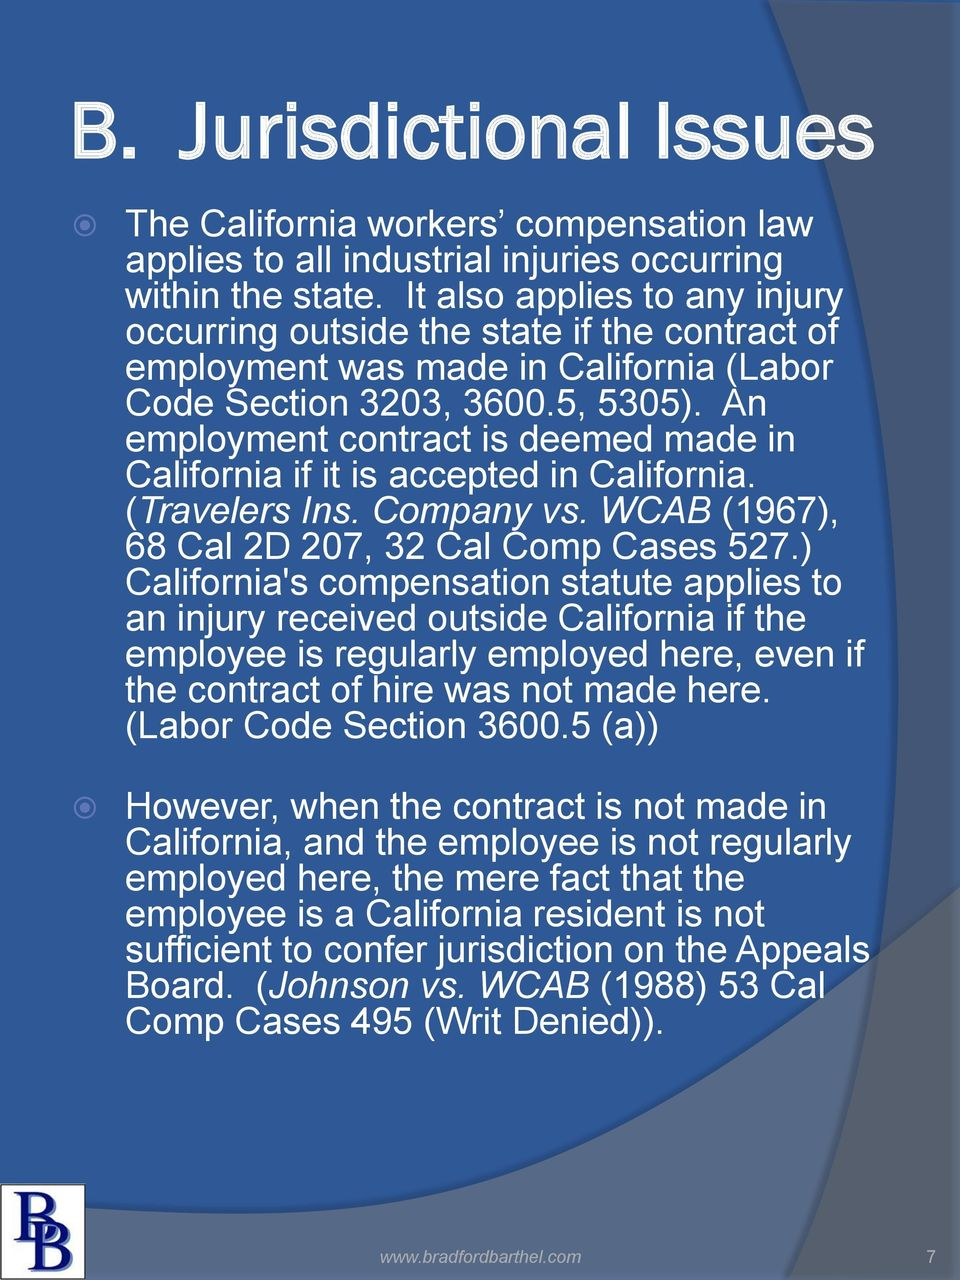 An employment contract is deemed made in California if it is accepted in California. (Travelers Ins. Company vs. WCAB (1967), 68 Cal 2D 207, 32 Cal Comp Cases 527.